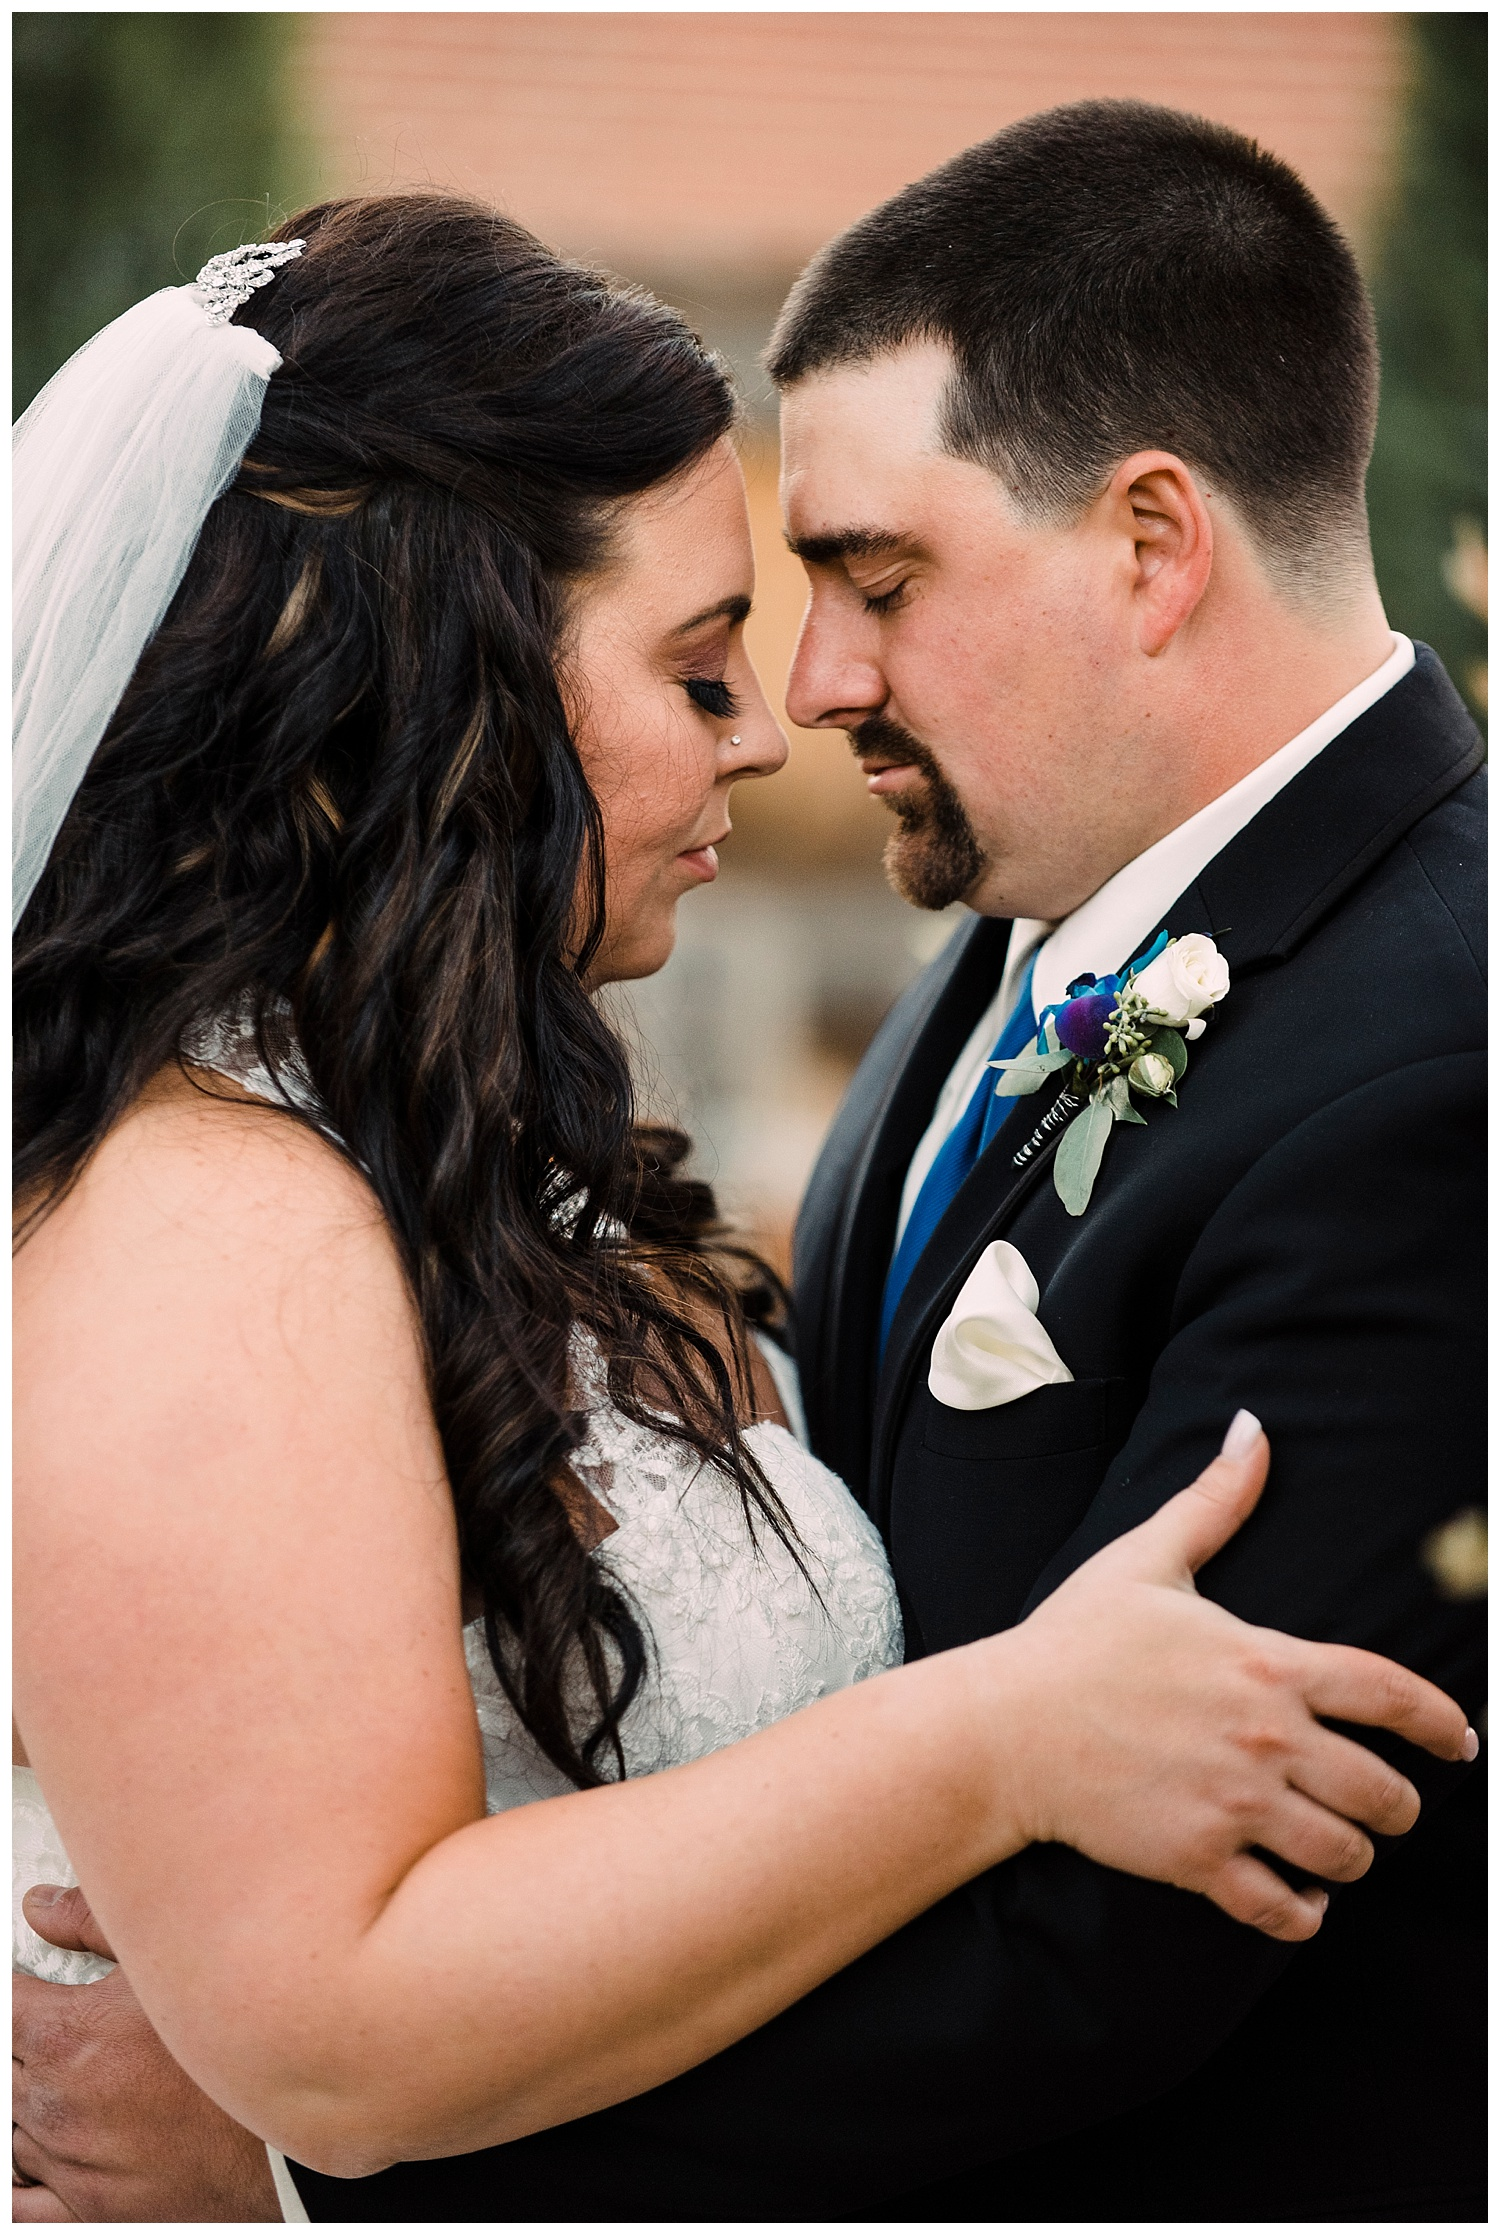 Colorado_Wedding_Photographer_Apollo_Fields_Weddings_Photography_023.jpg